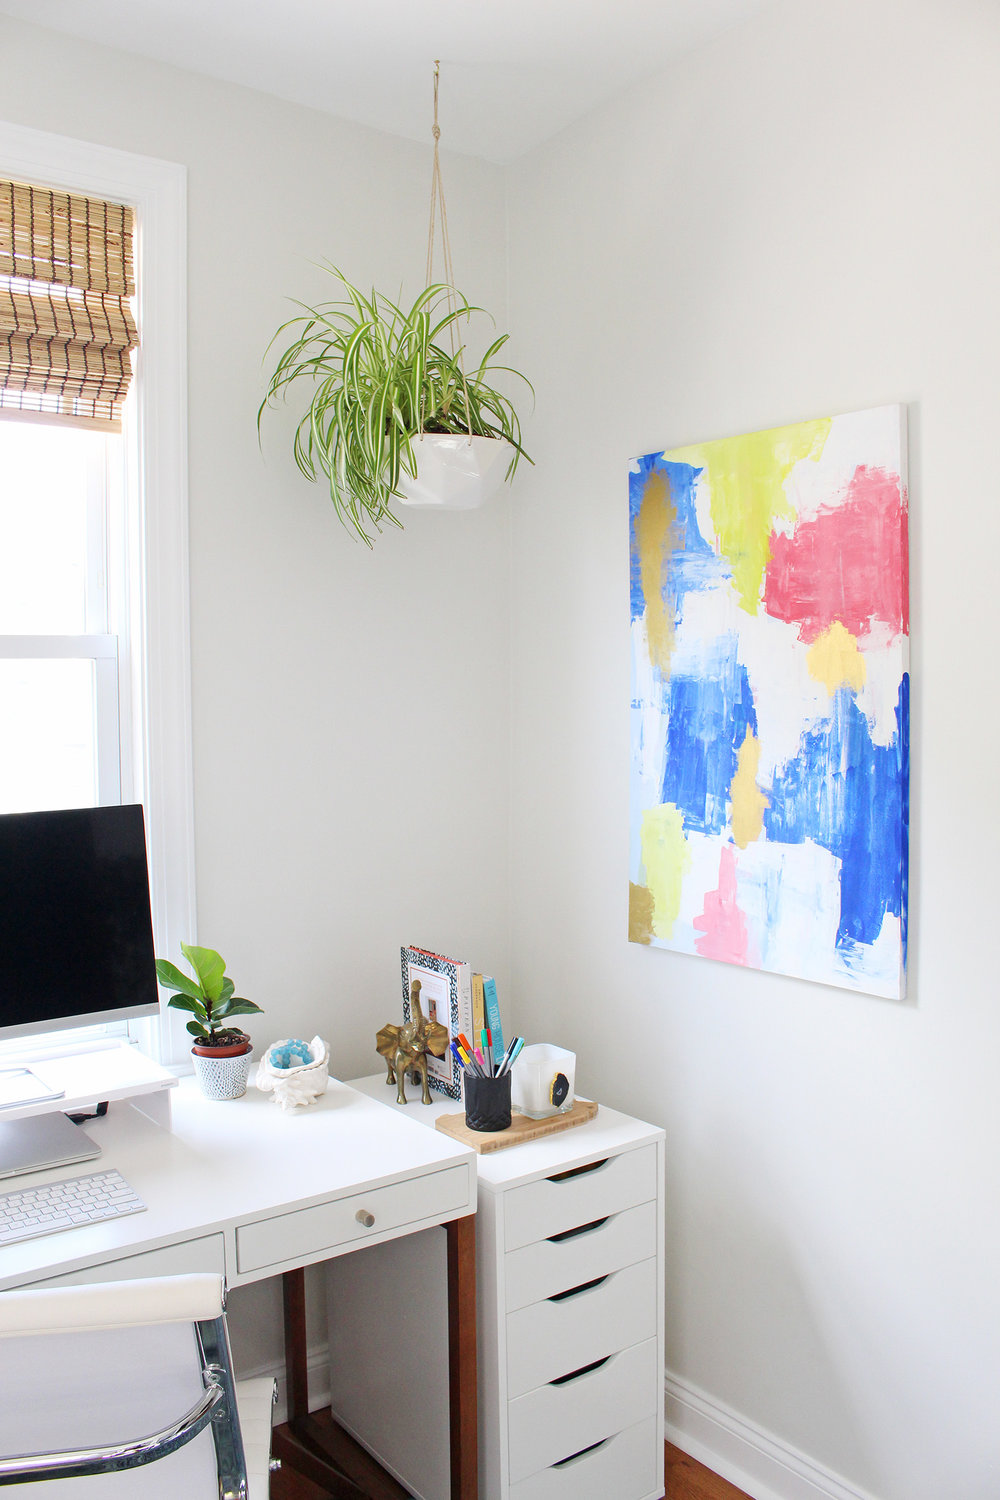 Use a hanging planter to fill an empty corner in your home. This white geometric planter from Convivial Production was a perfect fit for the corner of my office.